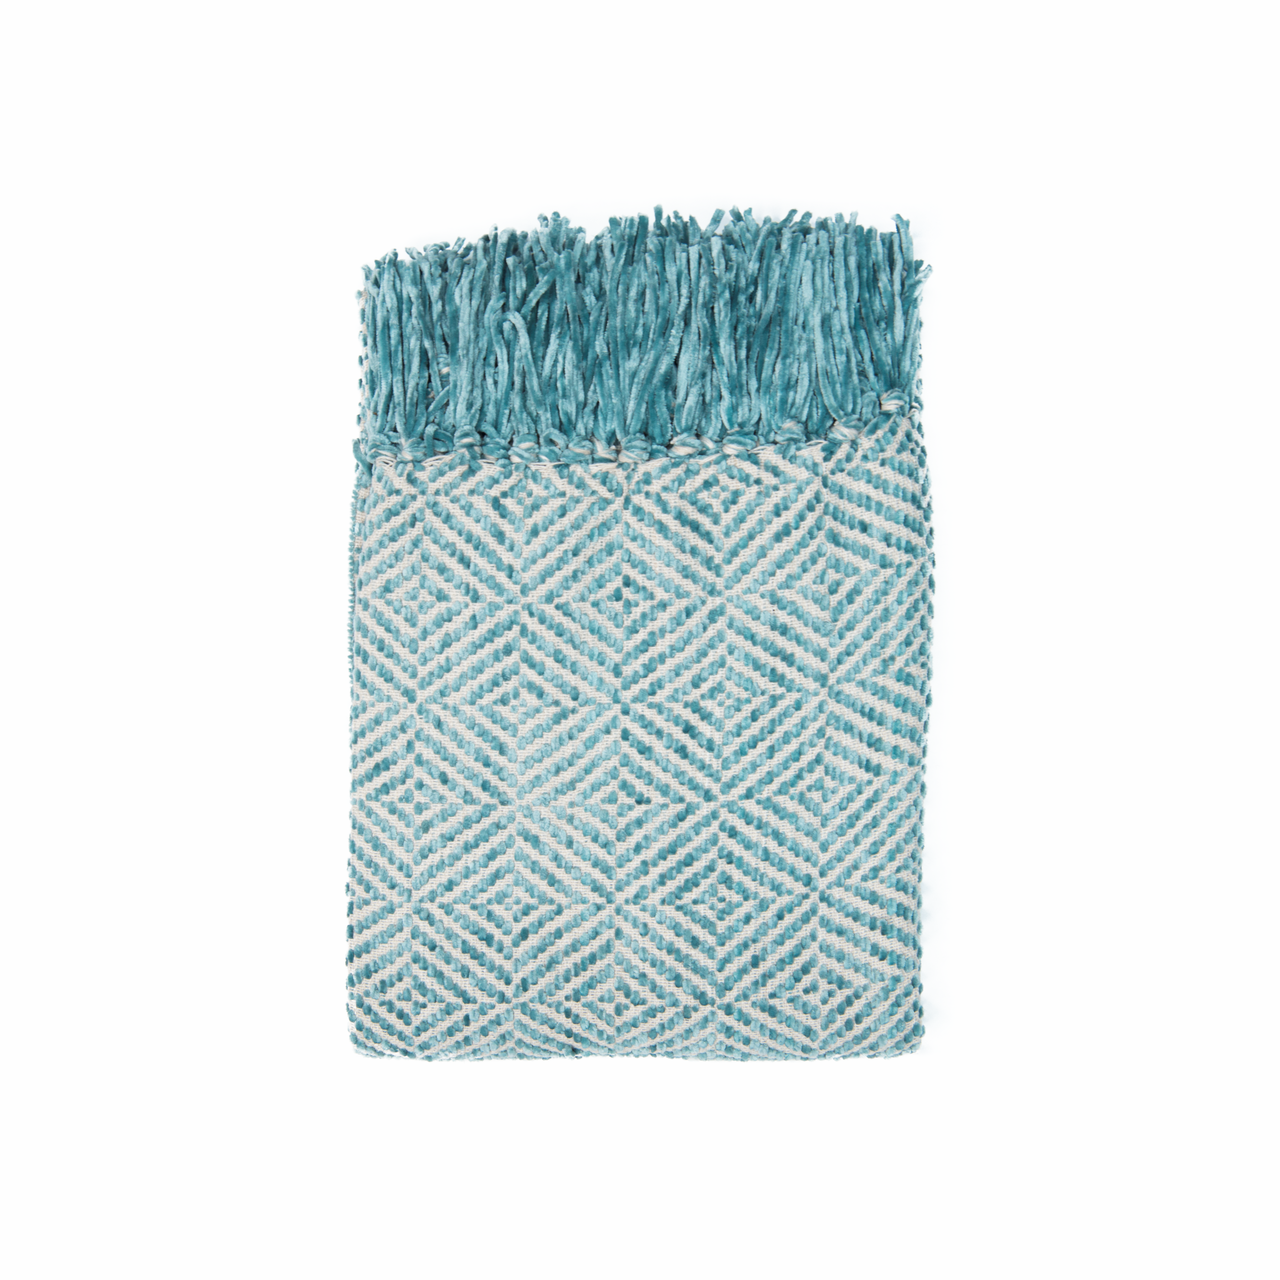 In 2 Linen Stanford Chenille Throw Rug | Turquoise